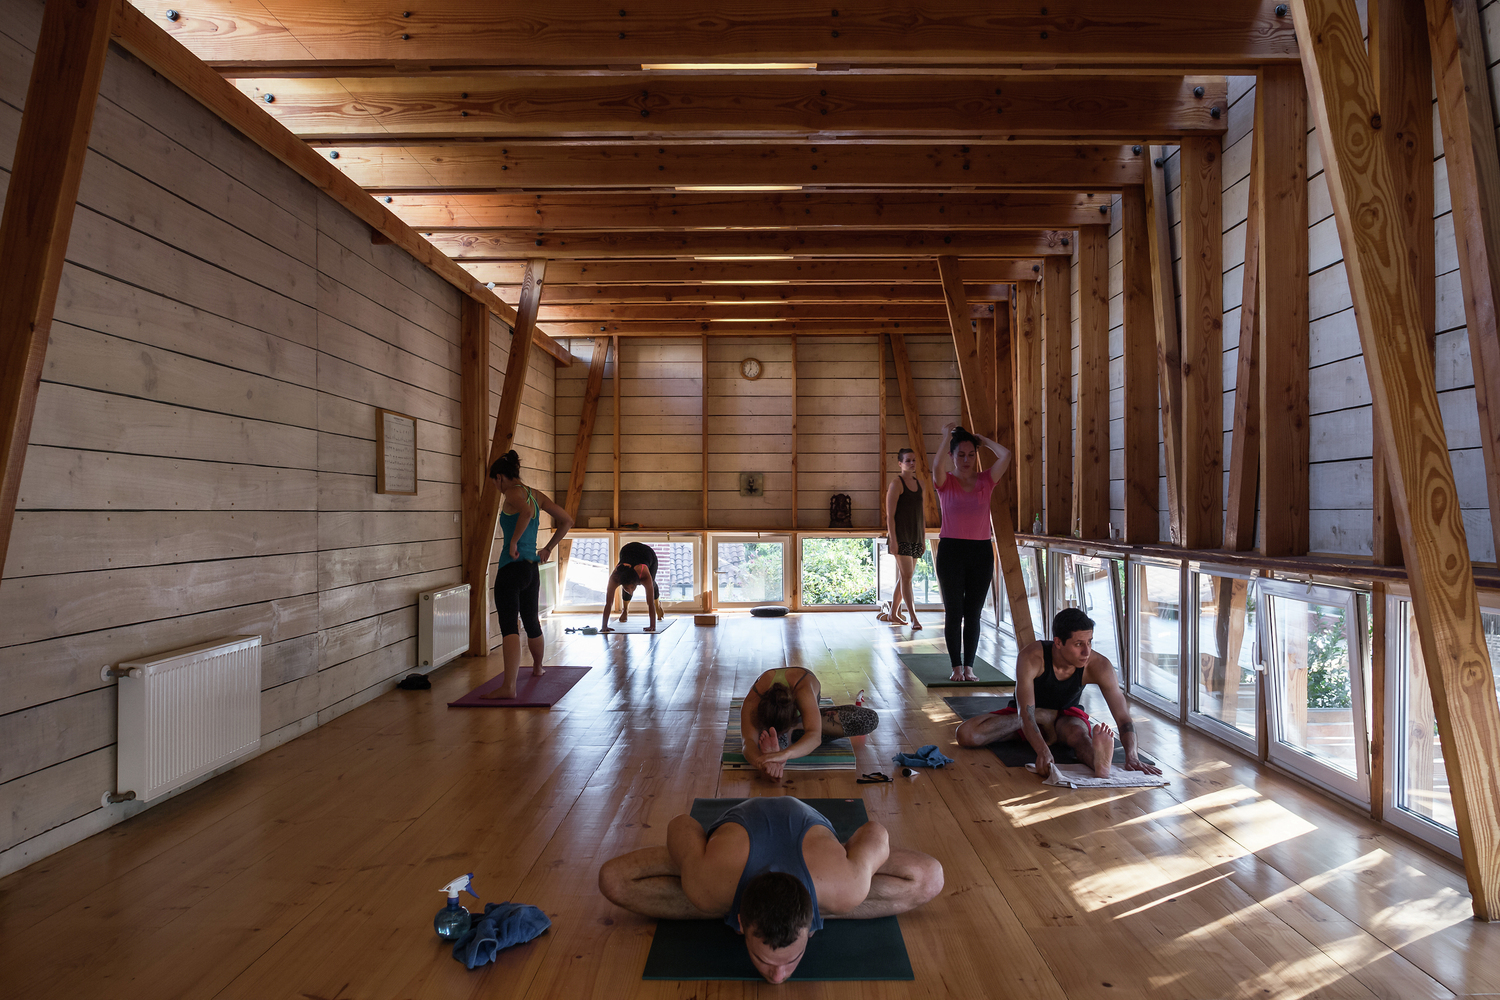 The key architectural elements required to design yoga and meditation spaces